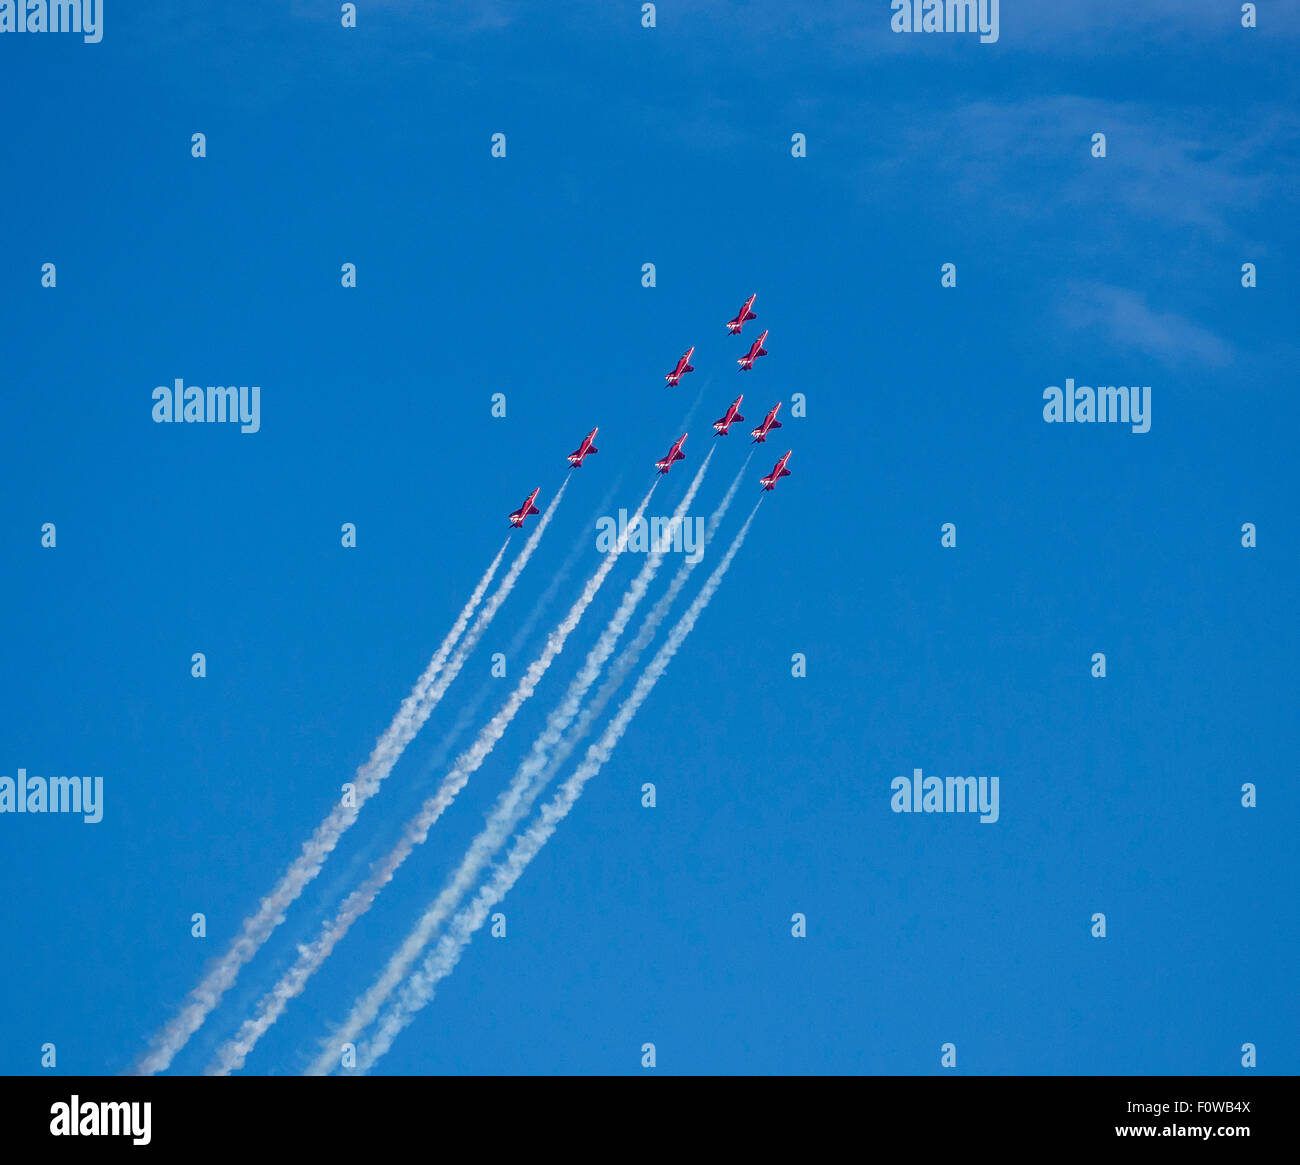 The Red Arrows, RAF Aerobatic Team fly above Poole Bay, Bournemouth,Dorset, England, UK - Stock Image